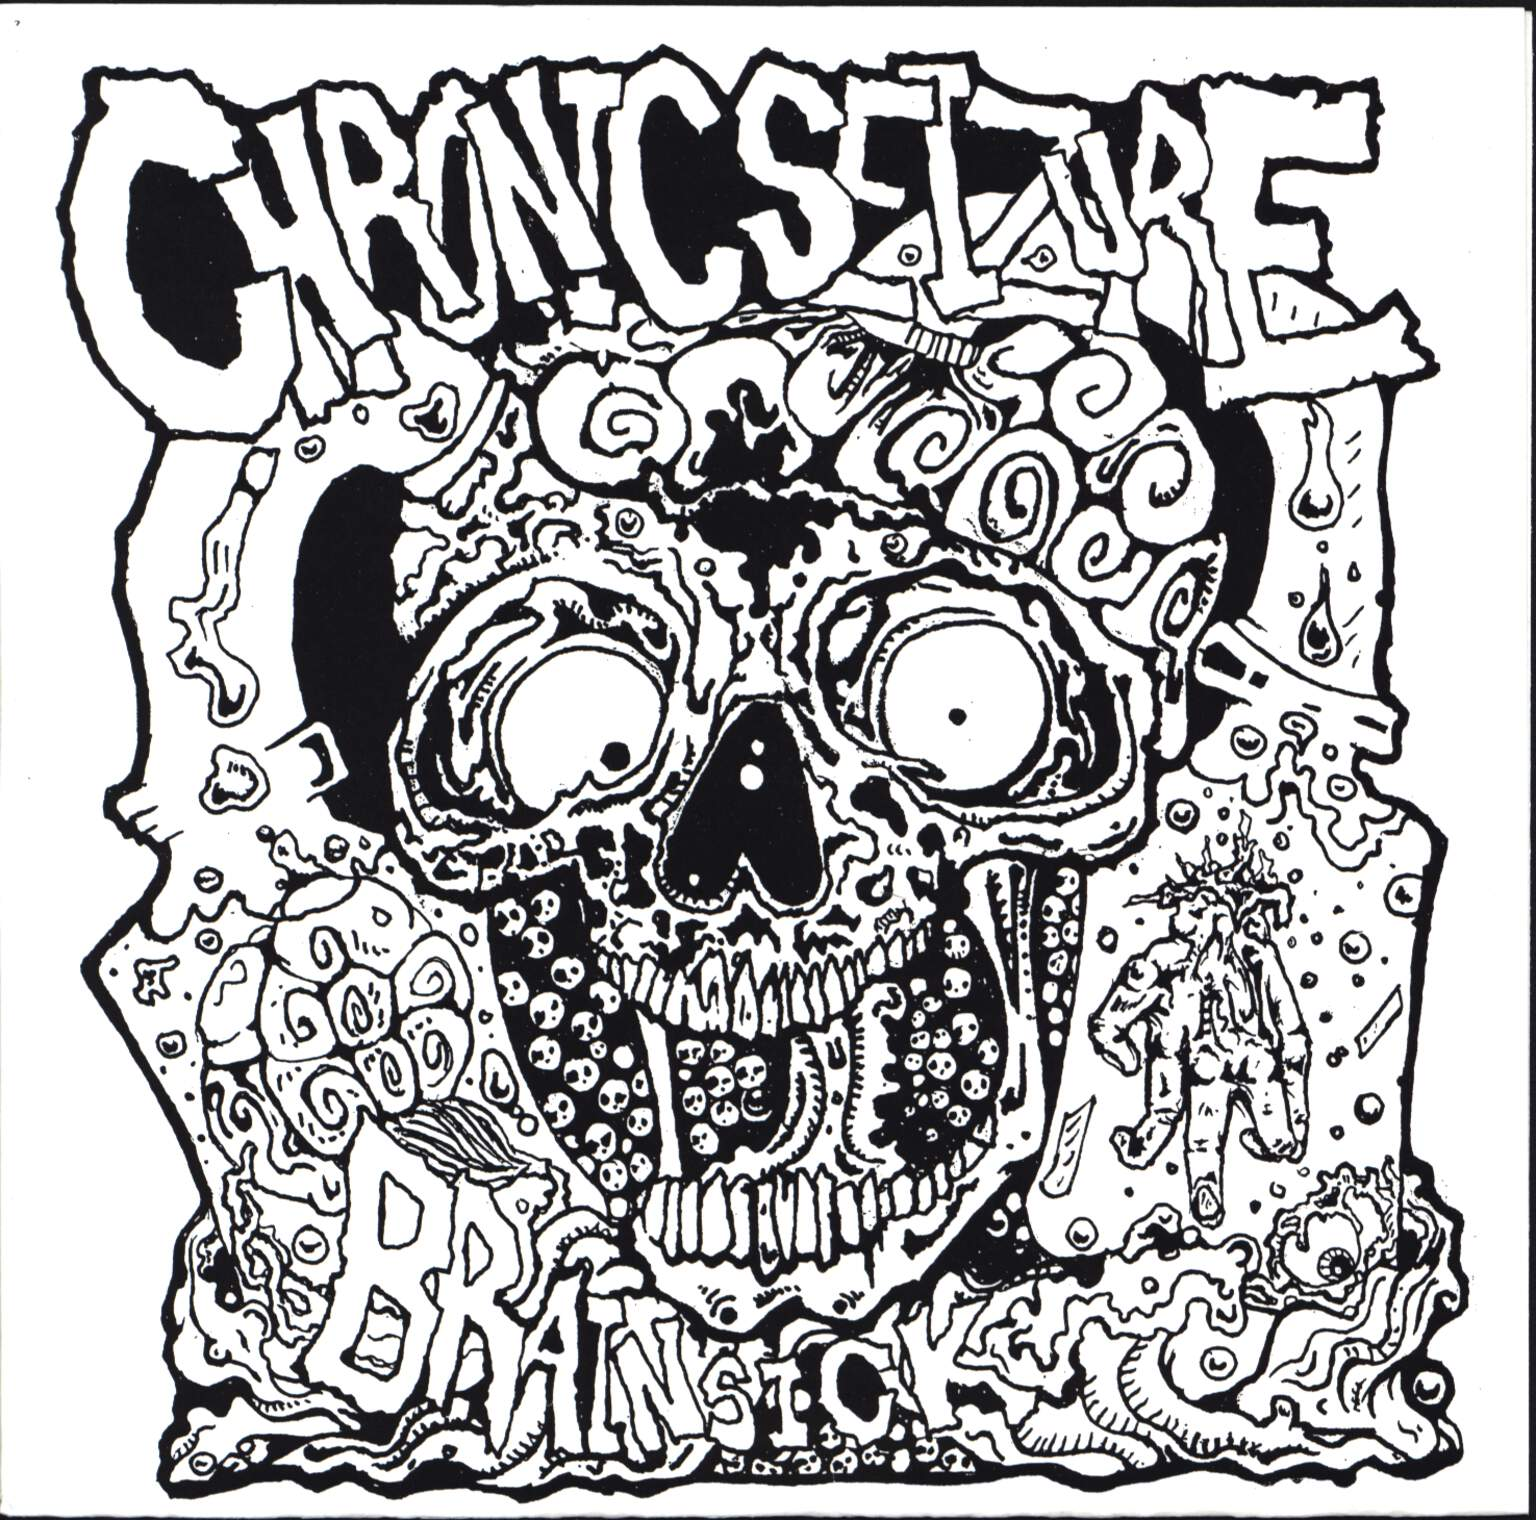 "Chronic Seizure: Brainsick, 7"" Single (Vinyl)"